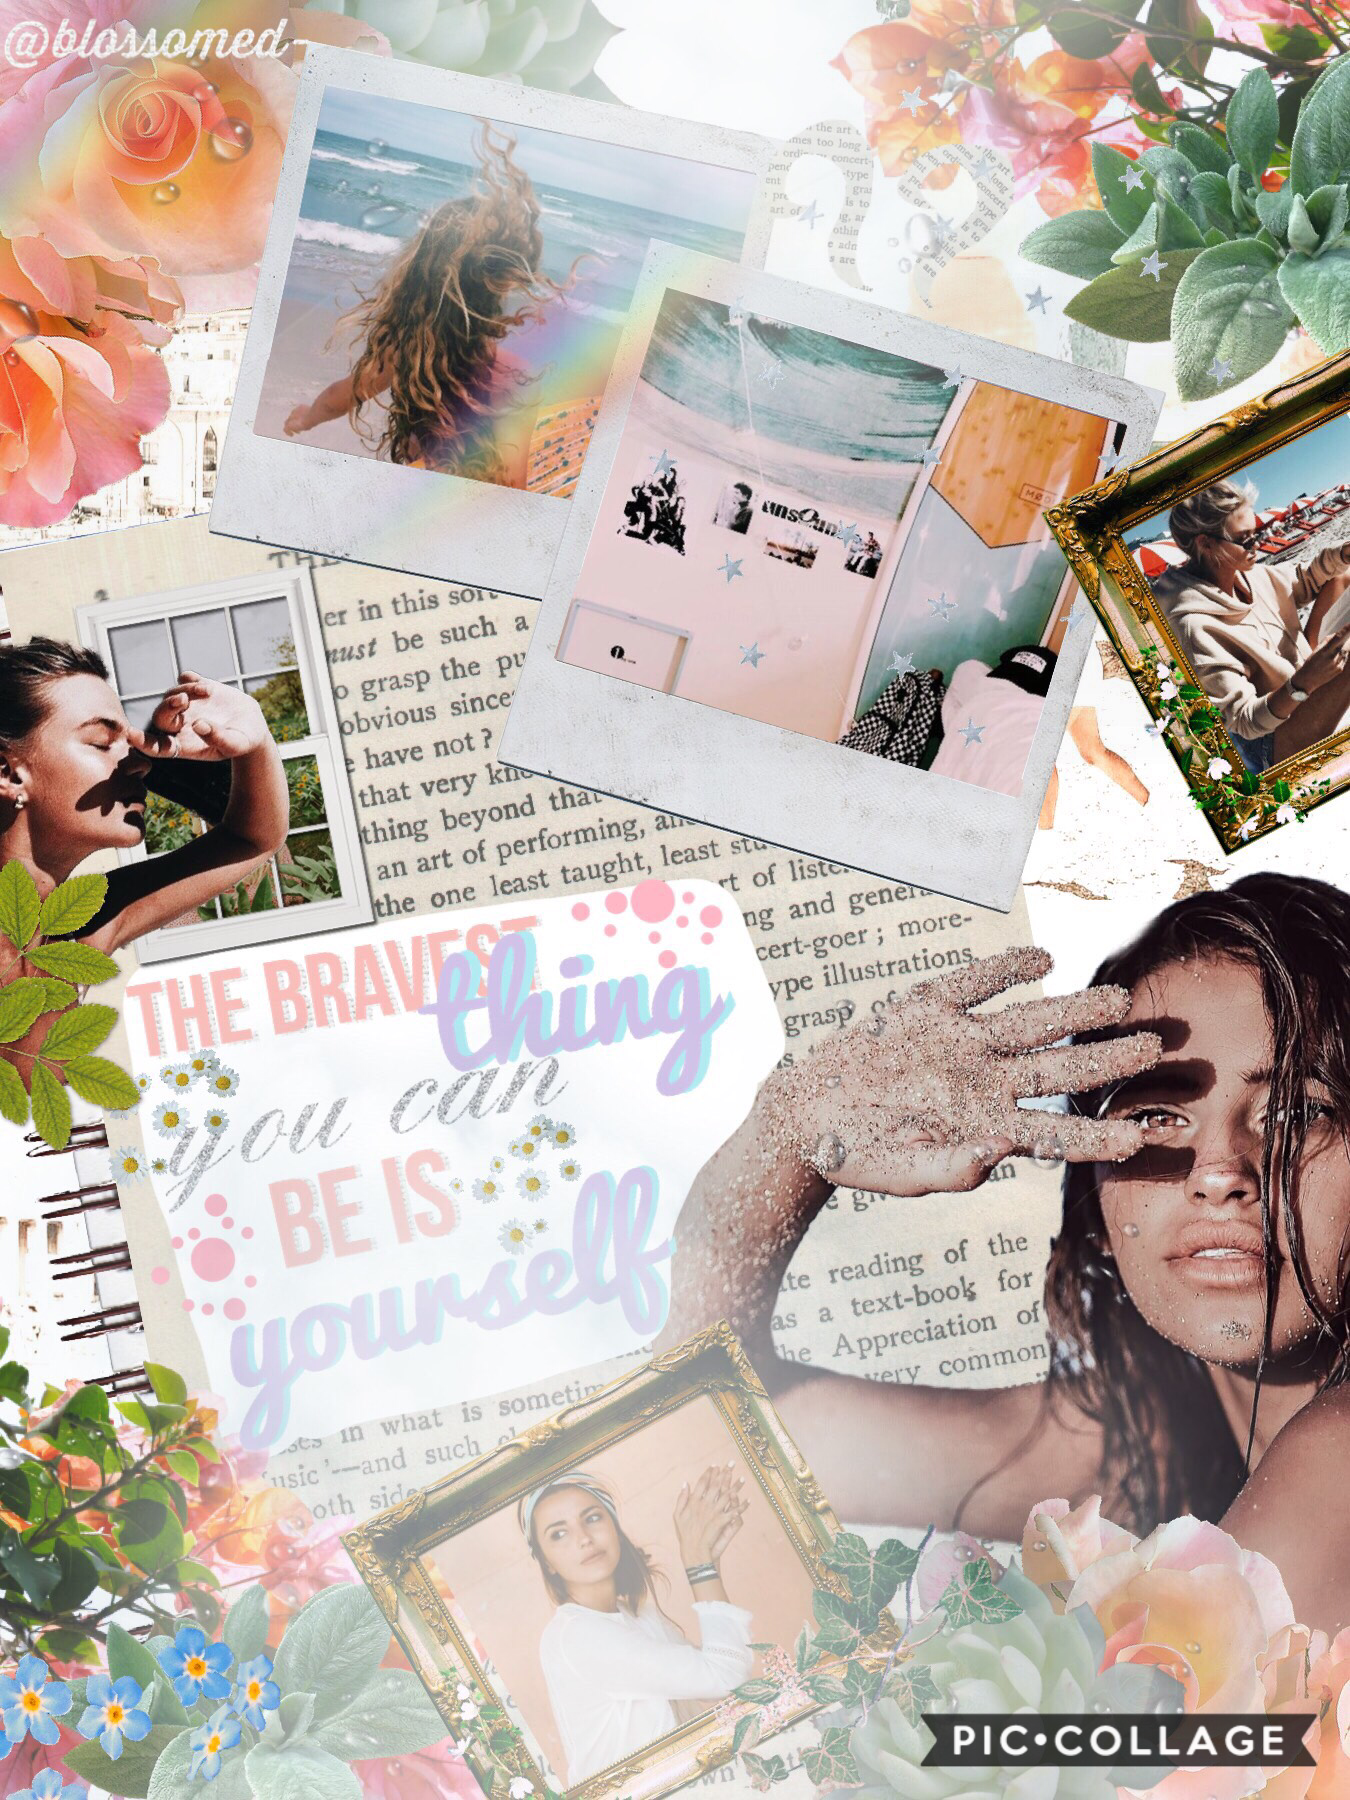 Hi blossoms! Click 💞 Haha I'm trying so many different themes I'll have a vote over on my extras when I've posted them all 🌷💜 omg I'm on 200! Woah 🦋 thanks so much 🌼🥰